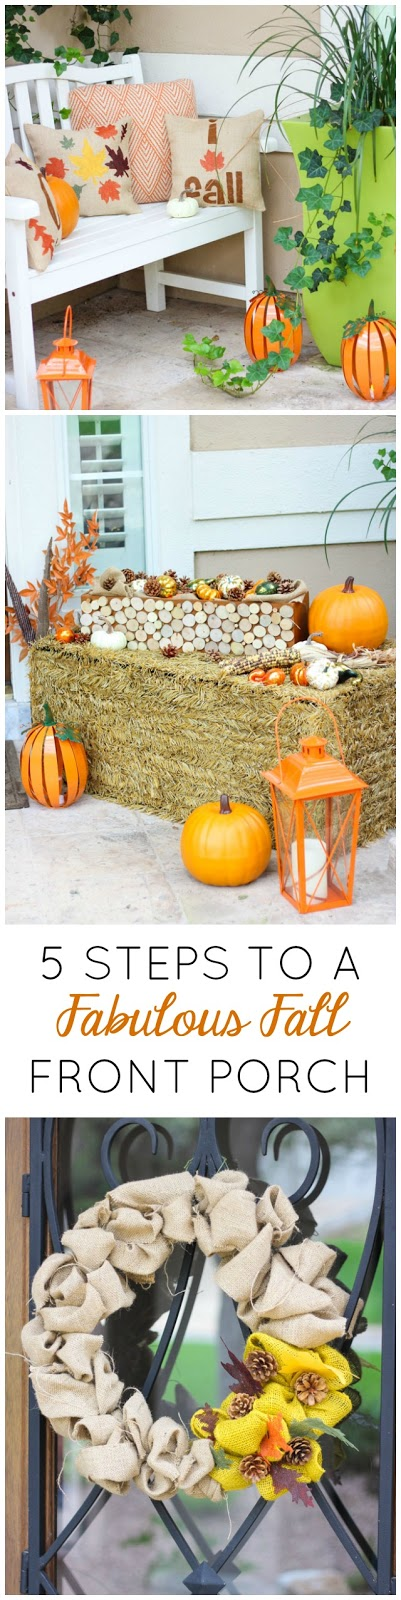 Love these simple ideas for decorating your front porch for fall!